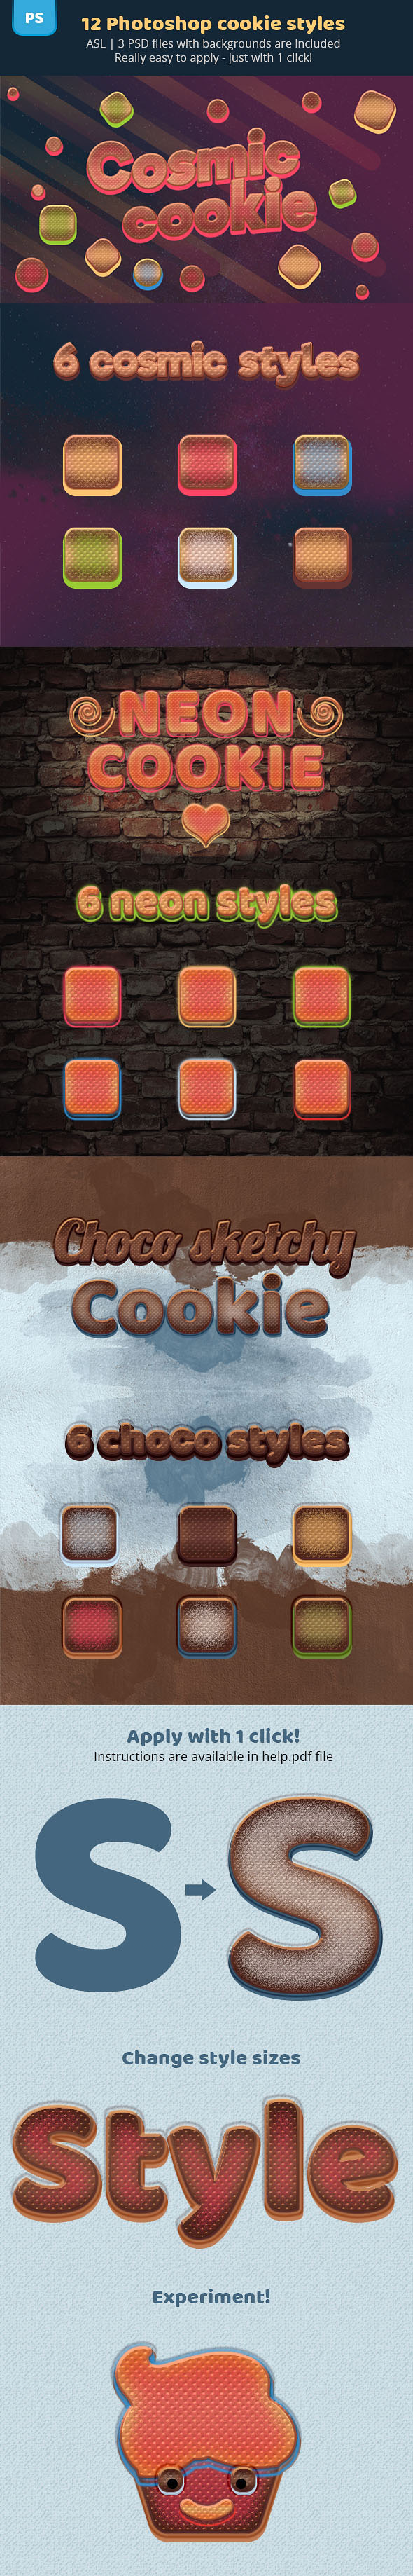 Cosmic Cookies Photoshop Text Styles - Text Effects Actions